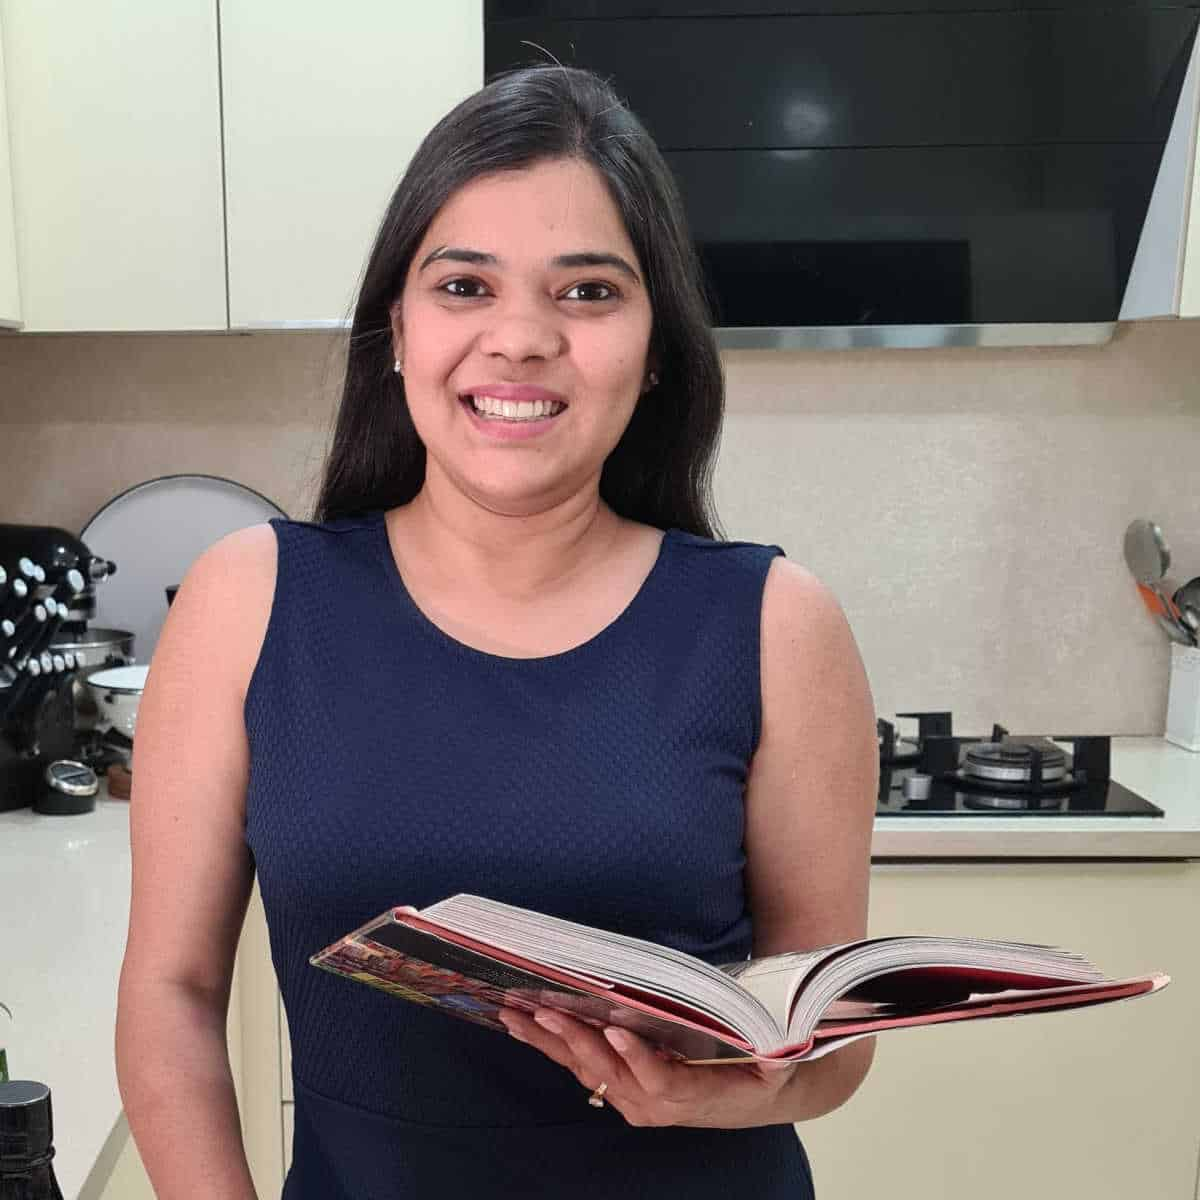 Neha Mathur with a book in hand